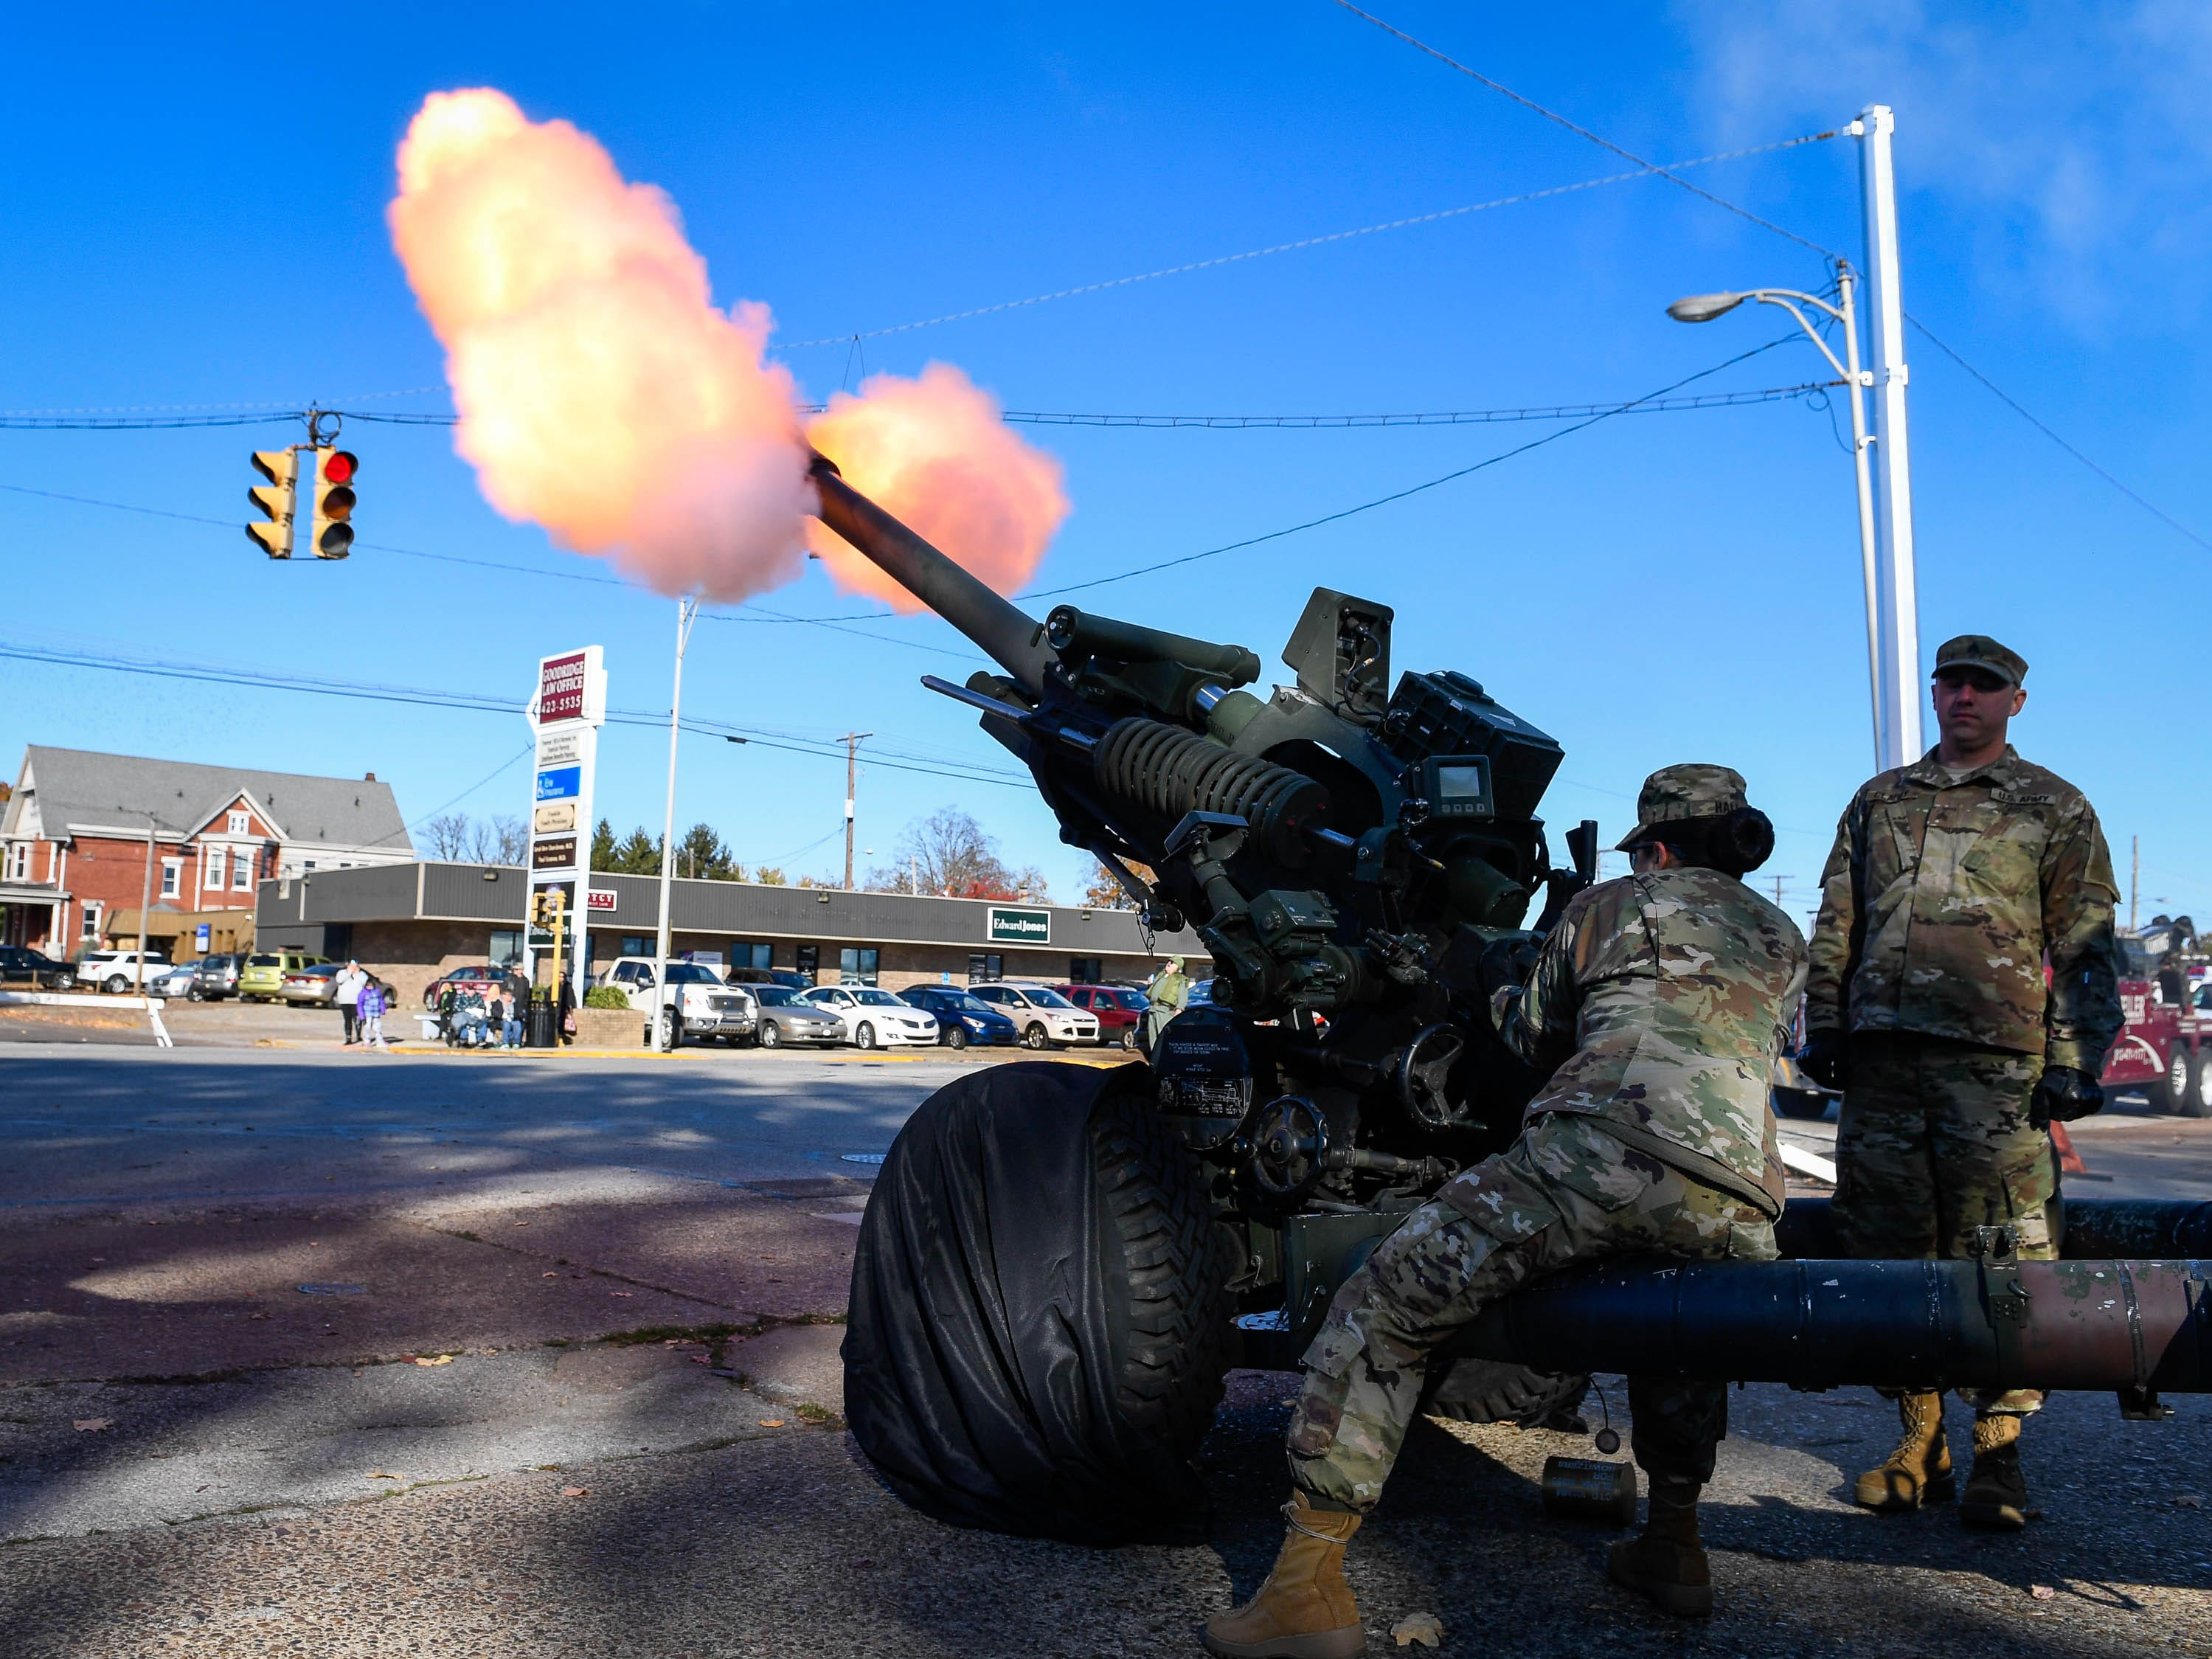 Indiana National Guard members fire a cannon to start the annual Four Freedoms Veterans Parade on Evansville's West Franklin Street Saturday, November 10, 2018.